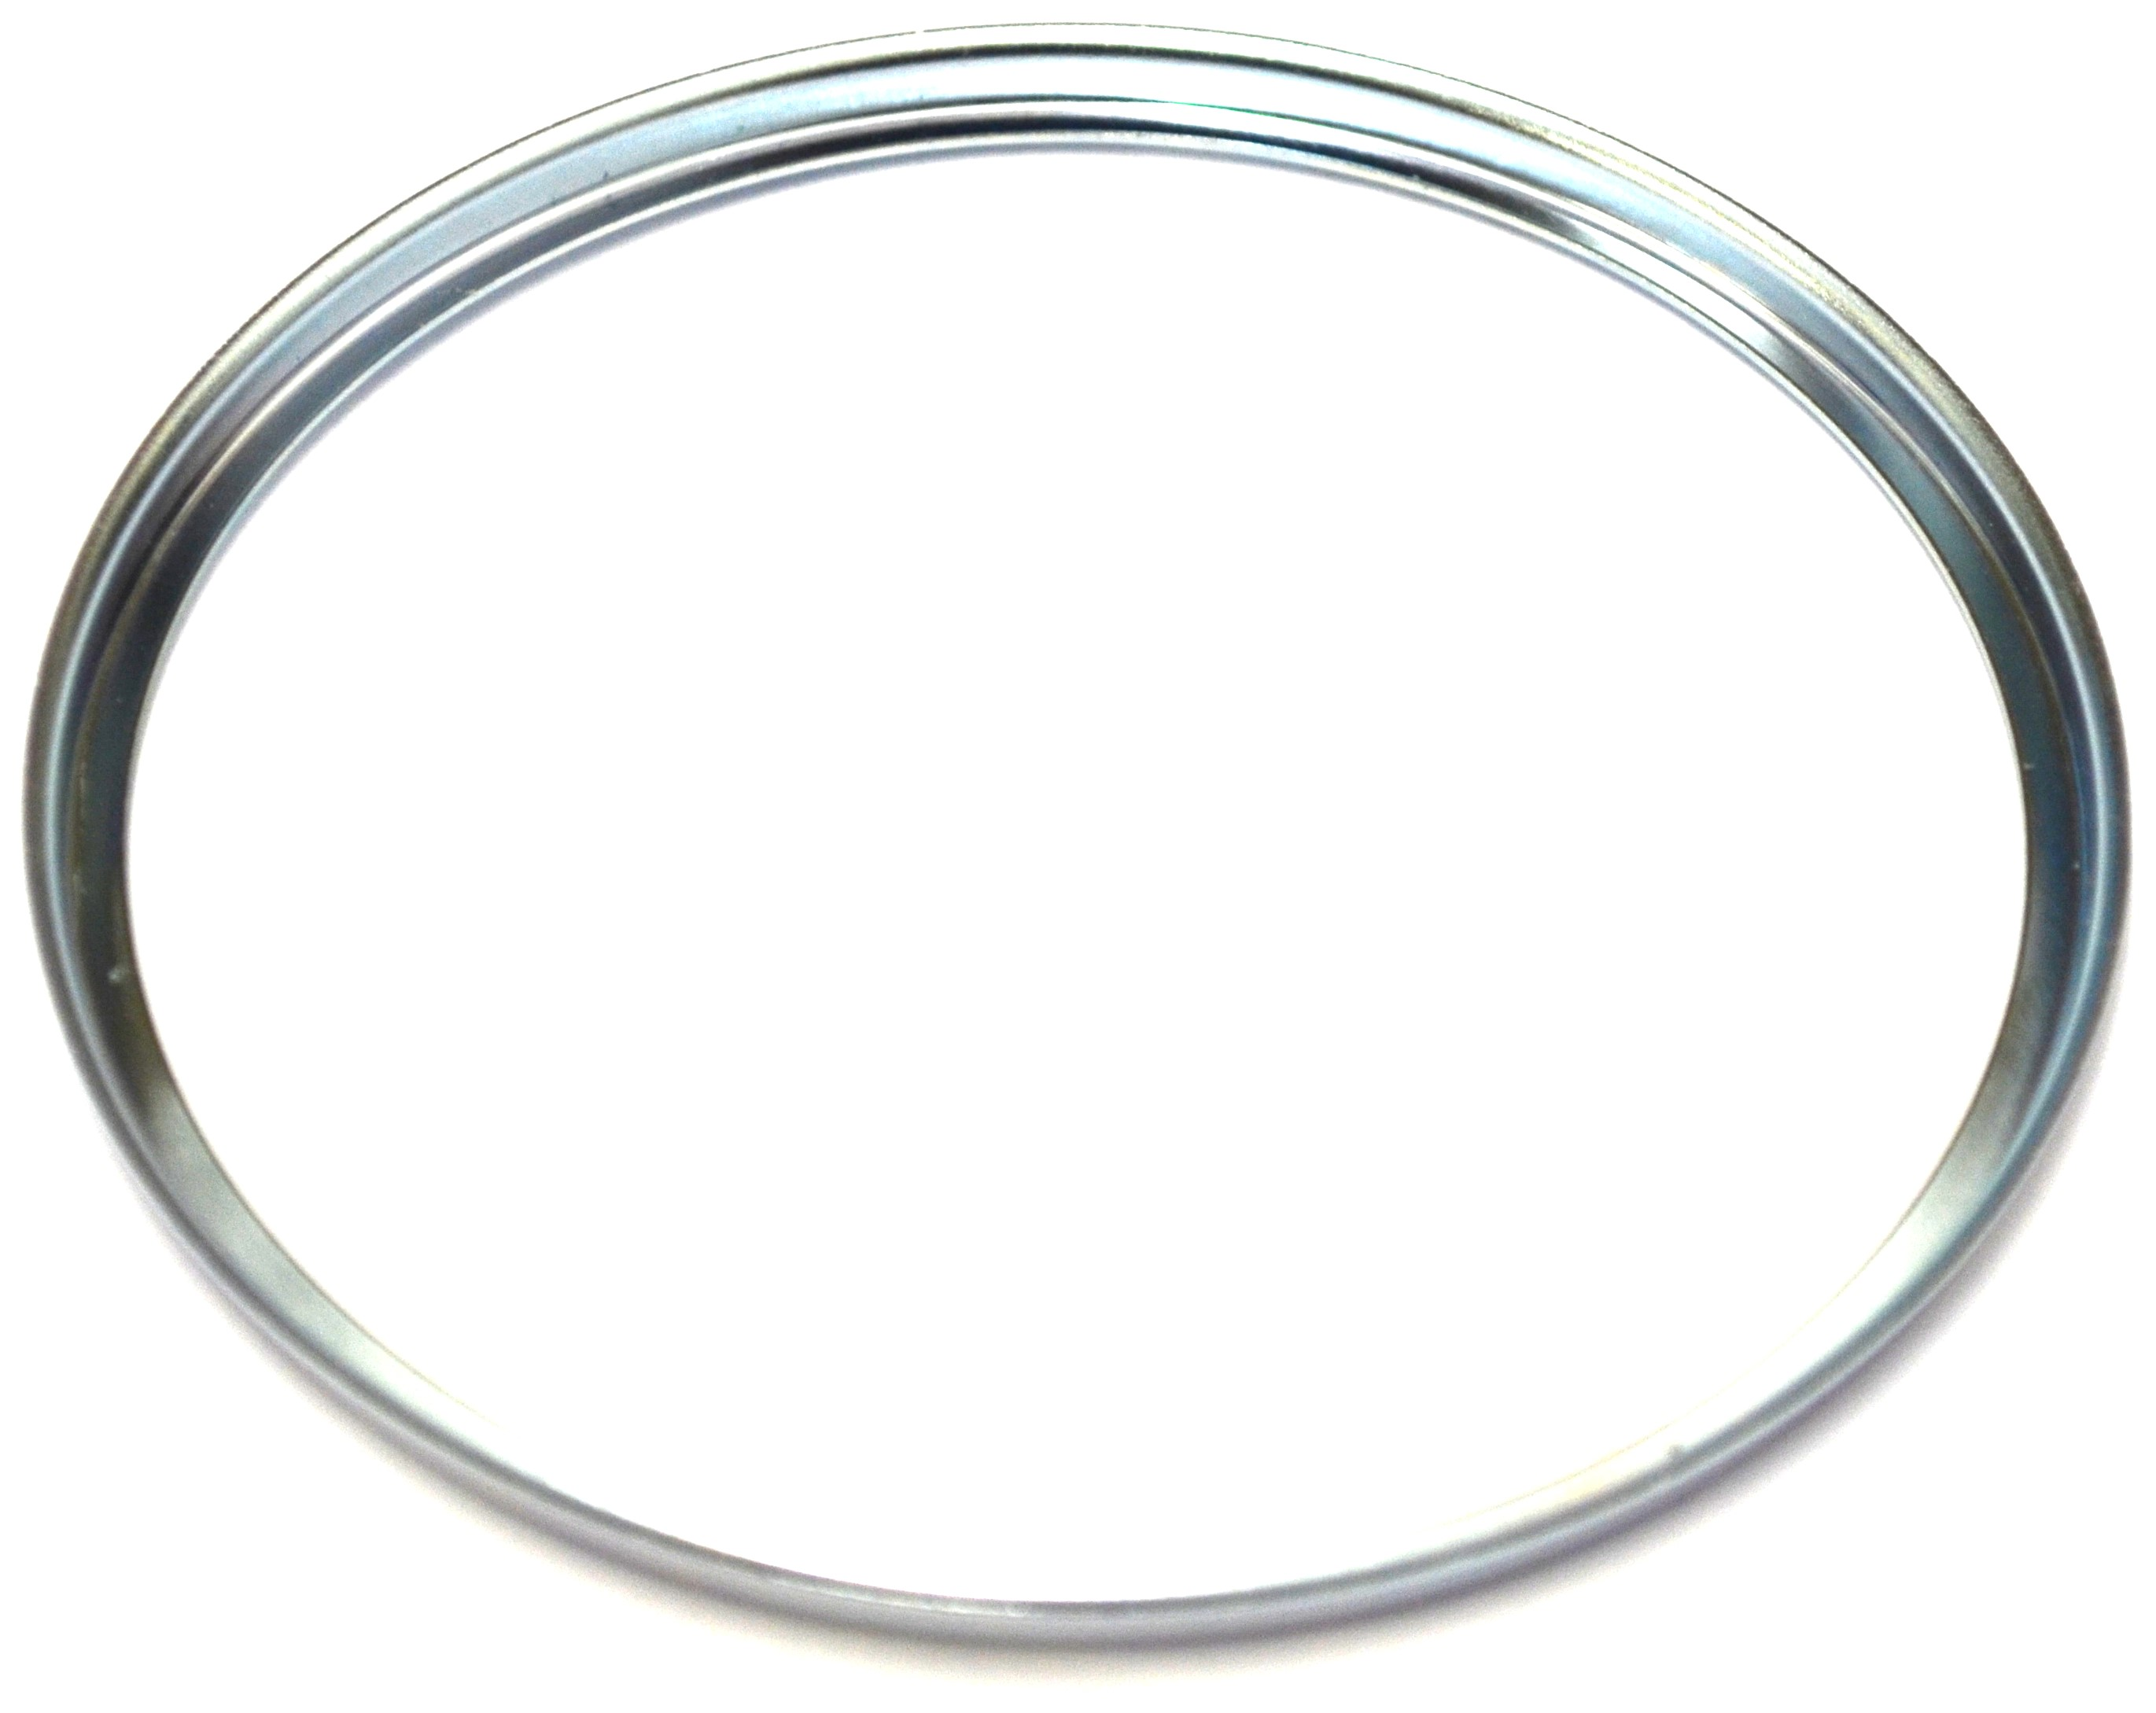 Chronometric Glass support ring